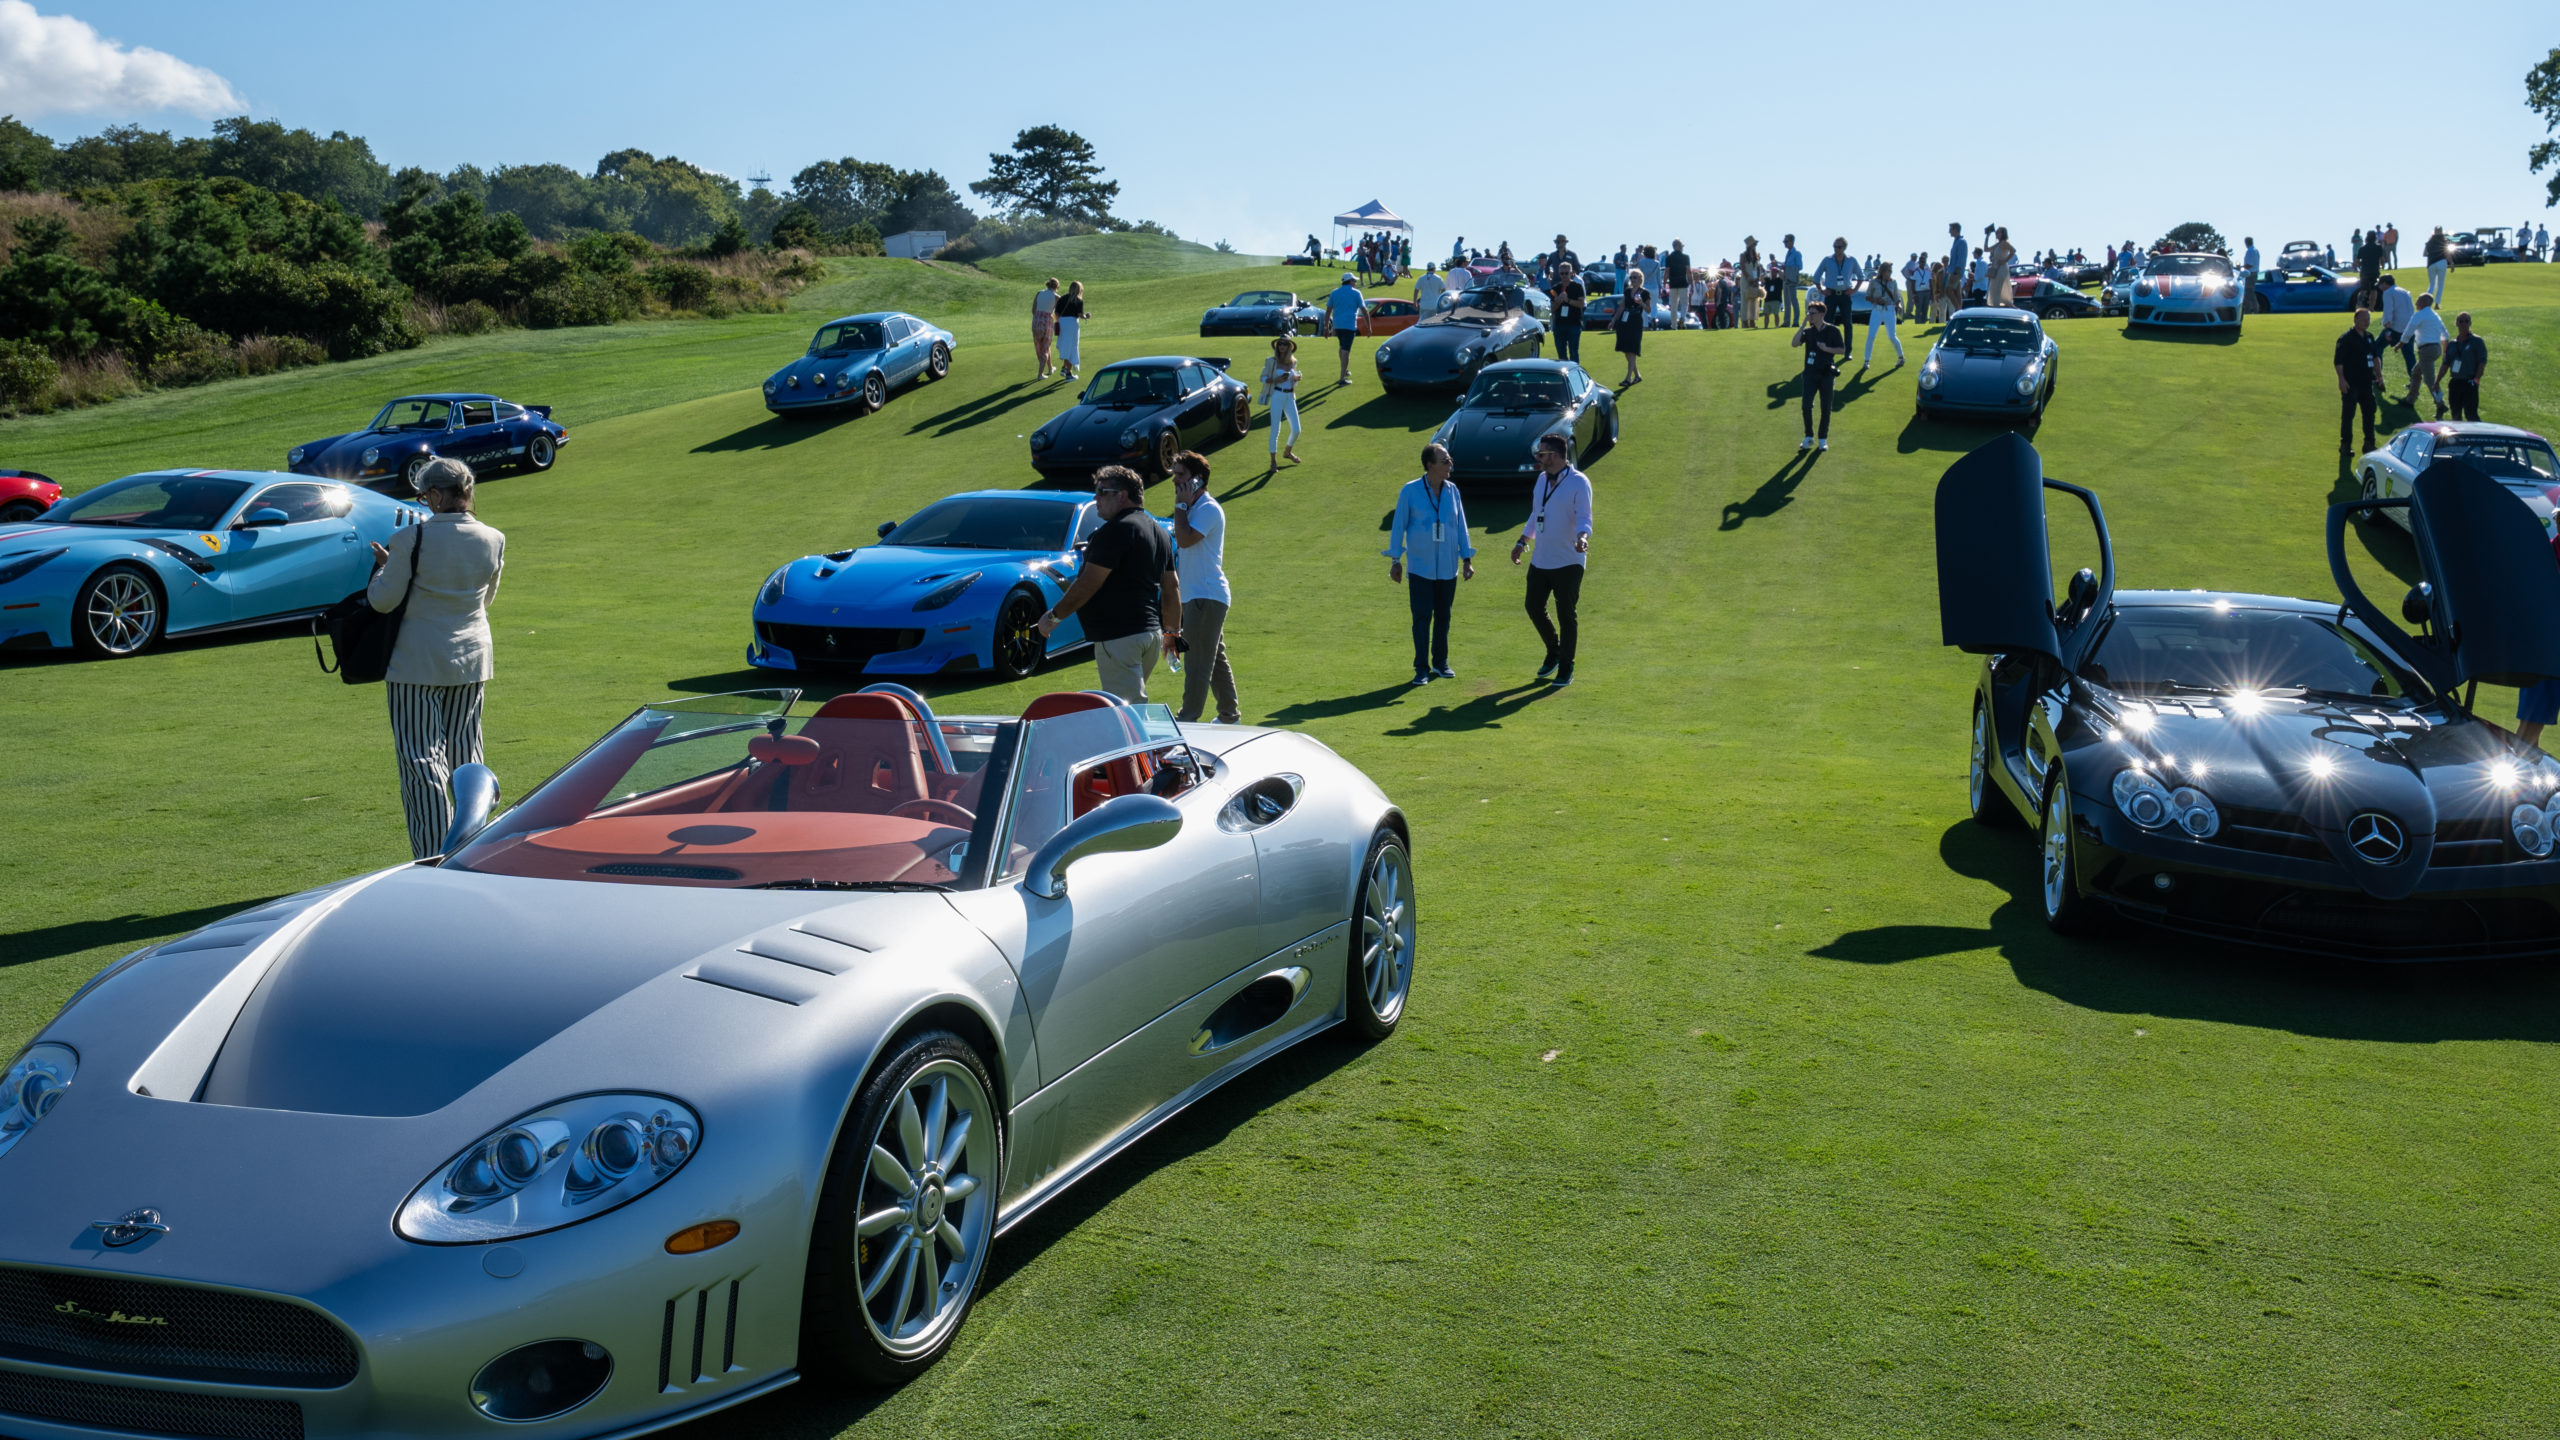 A number of automobiles, both classic and modern, sprawled The Bridge golf course on Saturday, the fifth annual event.